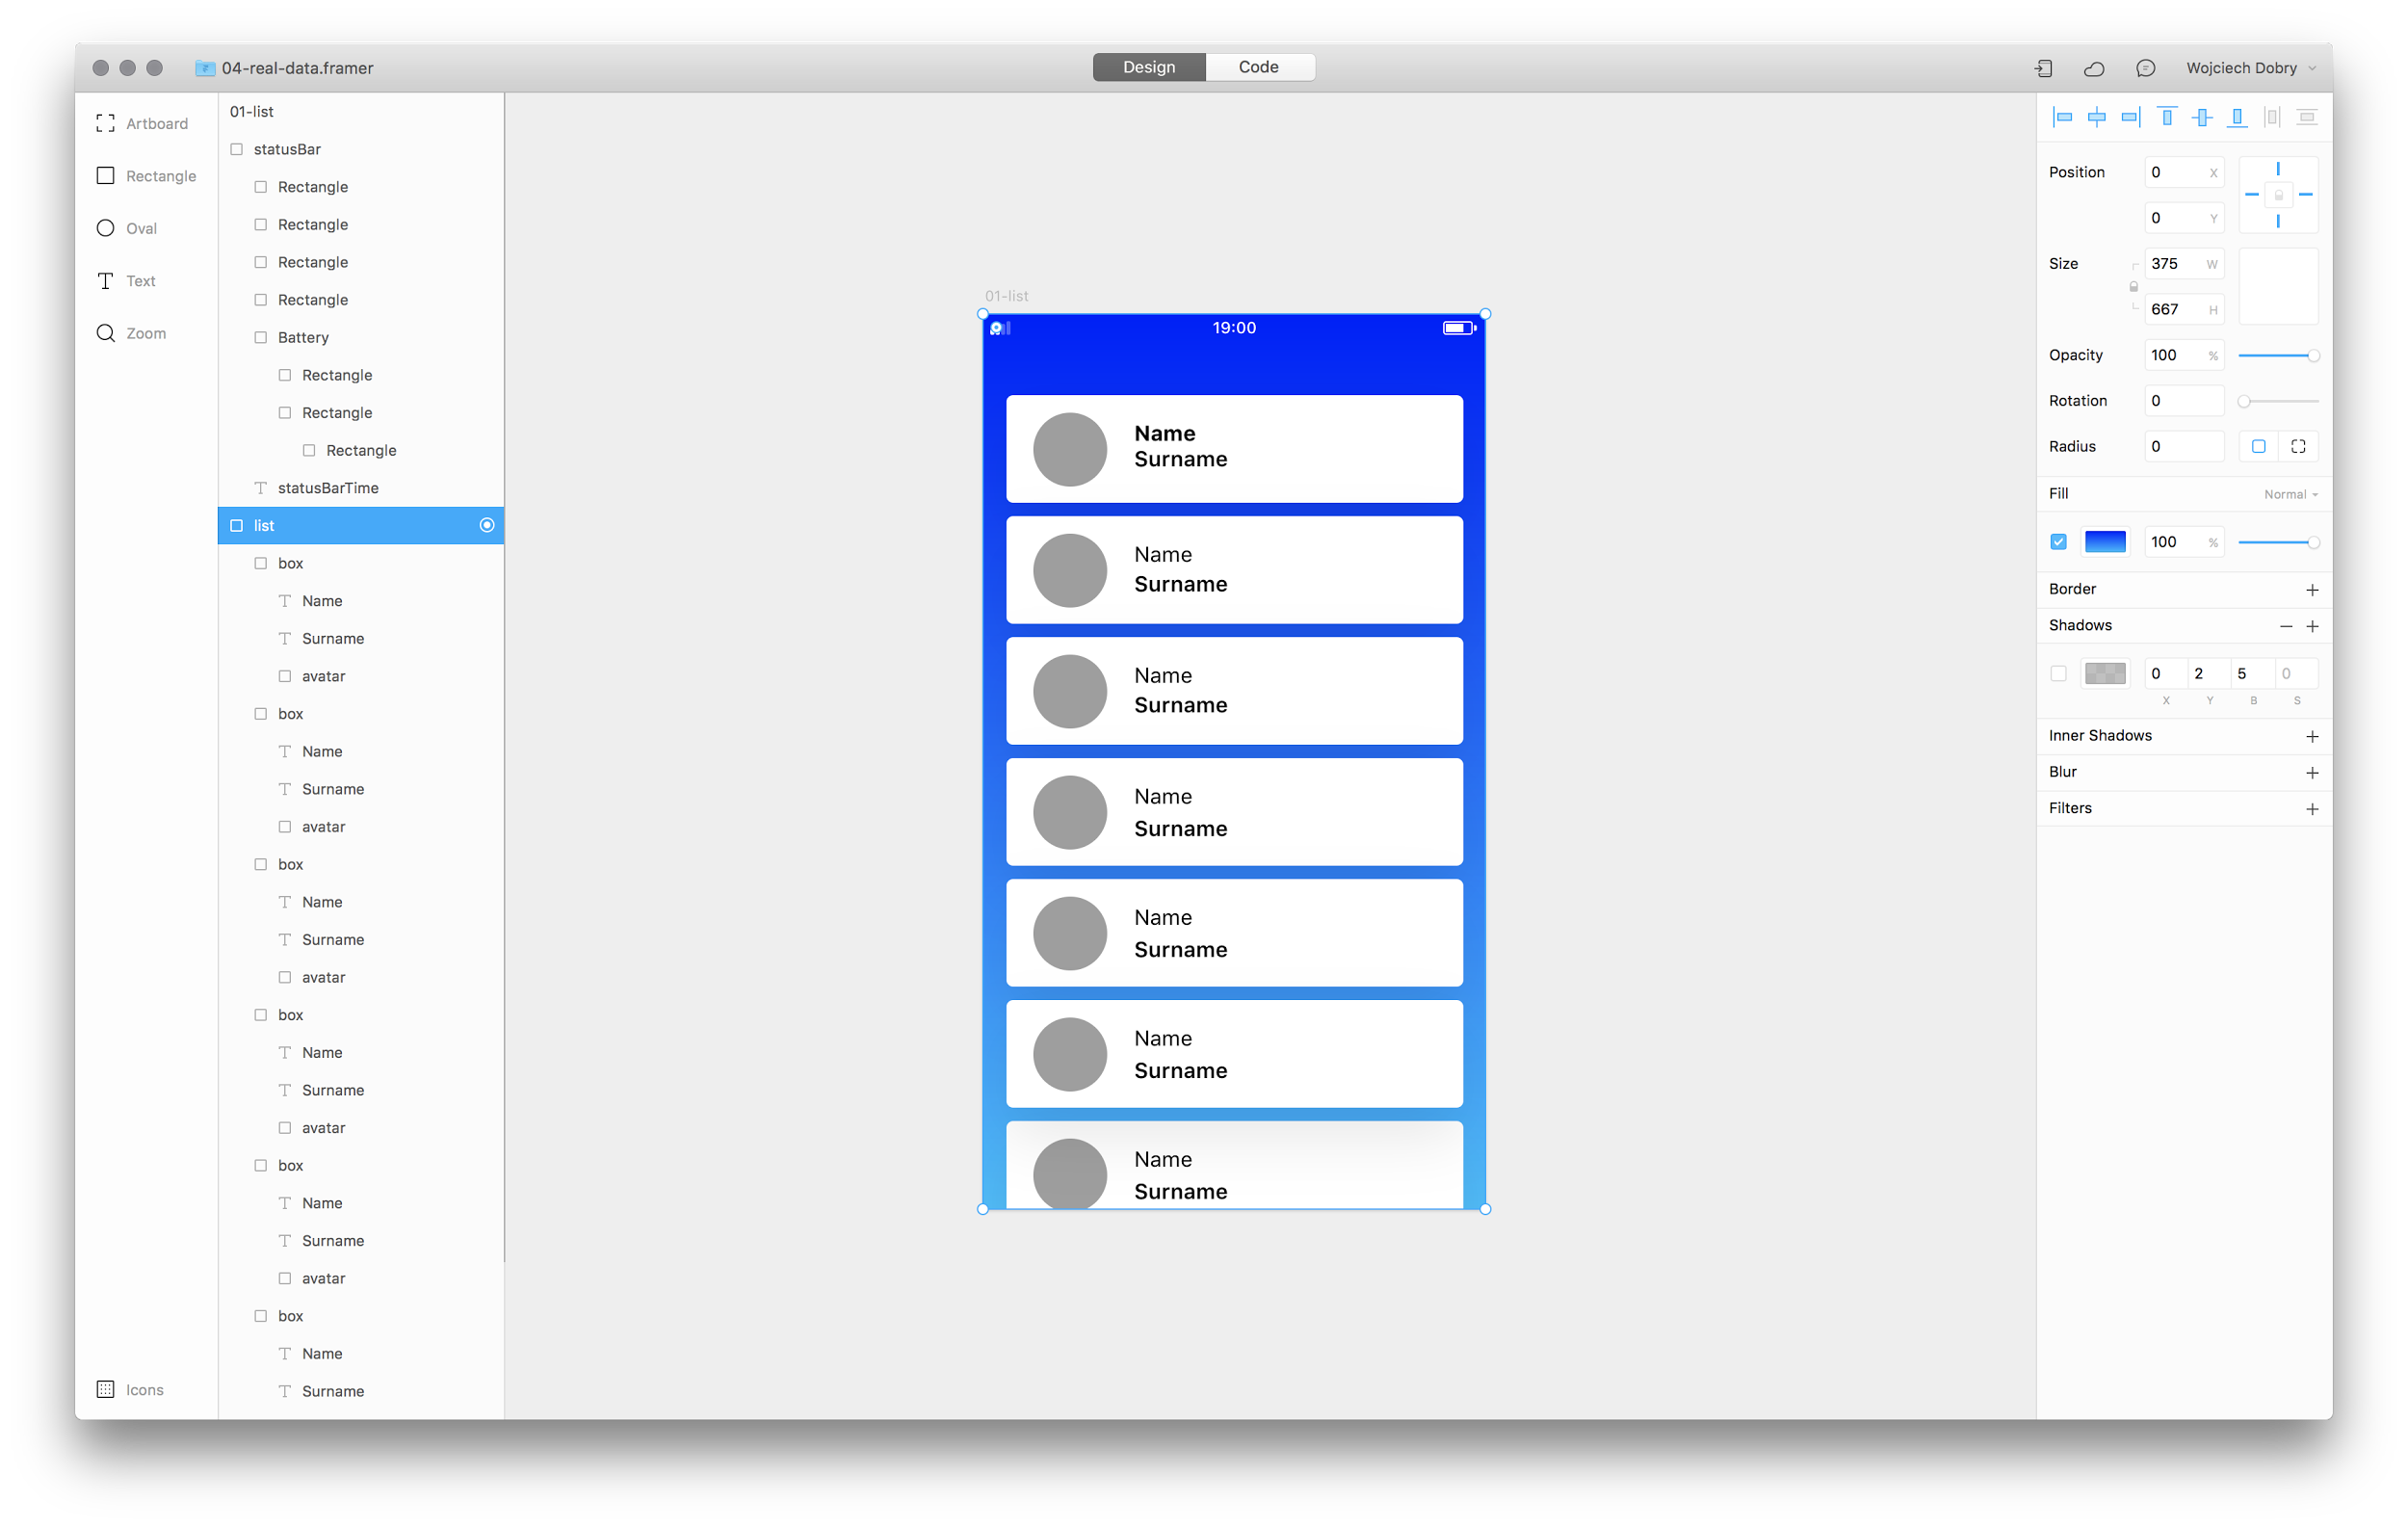 Design mode in Framer